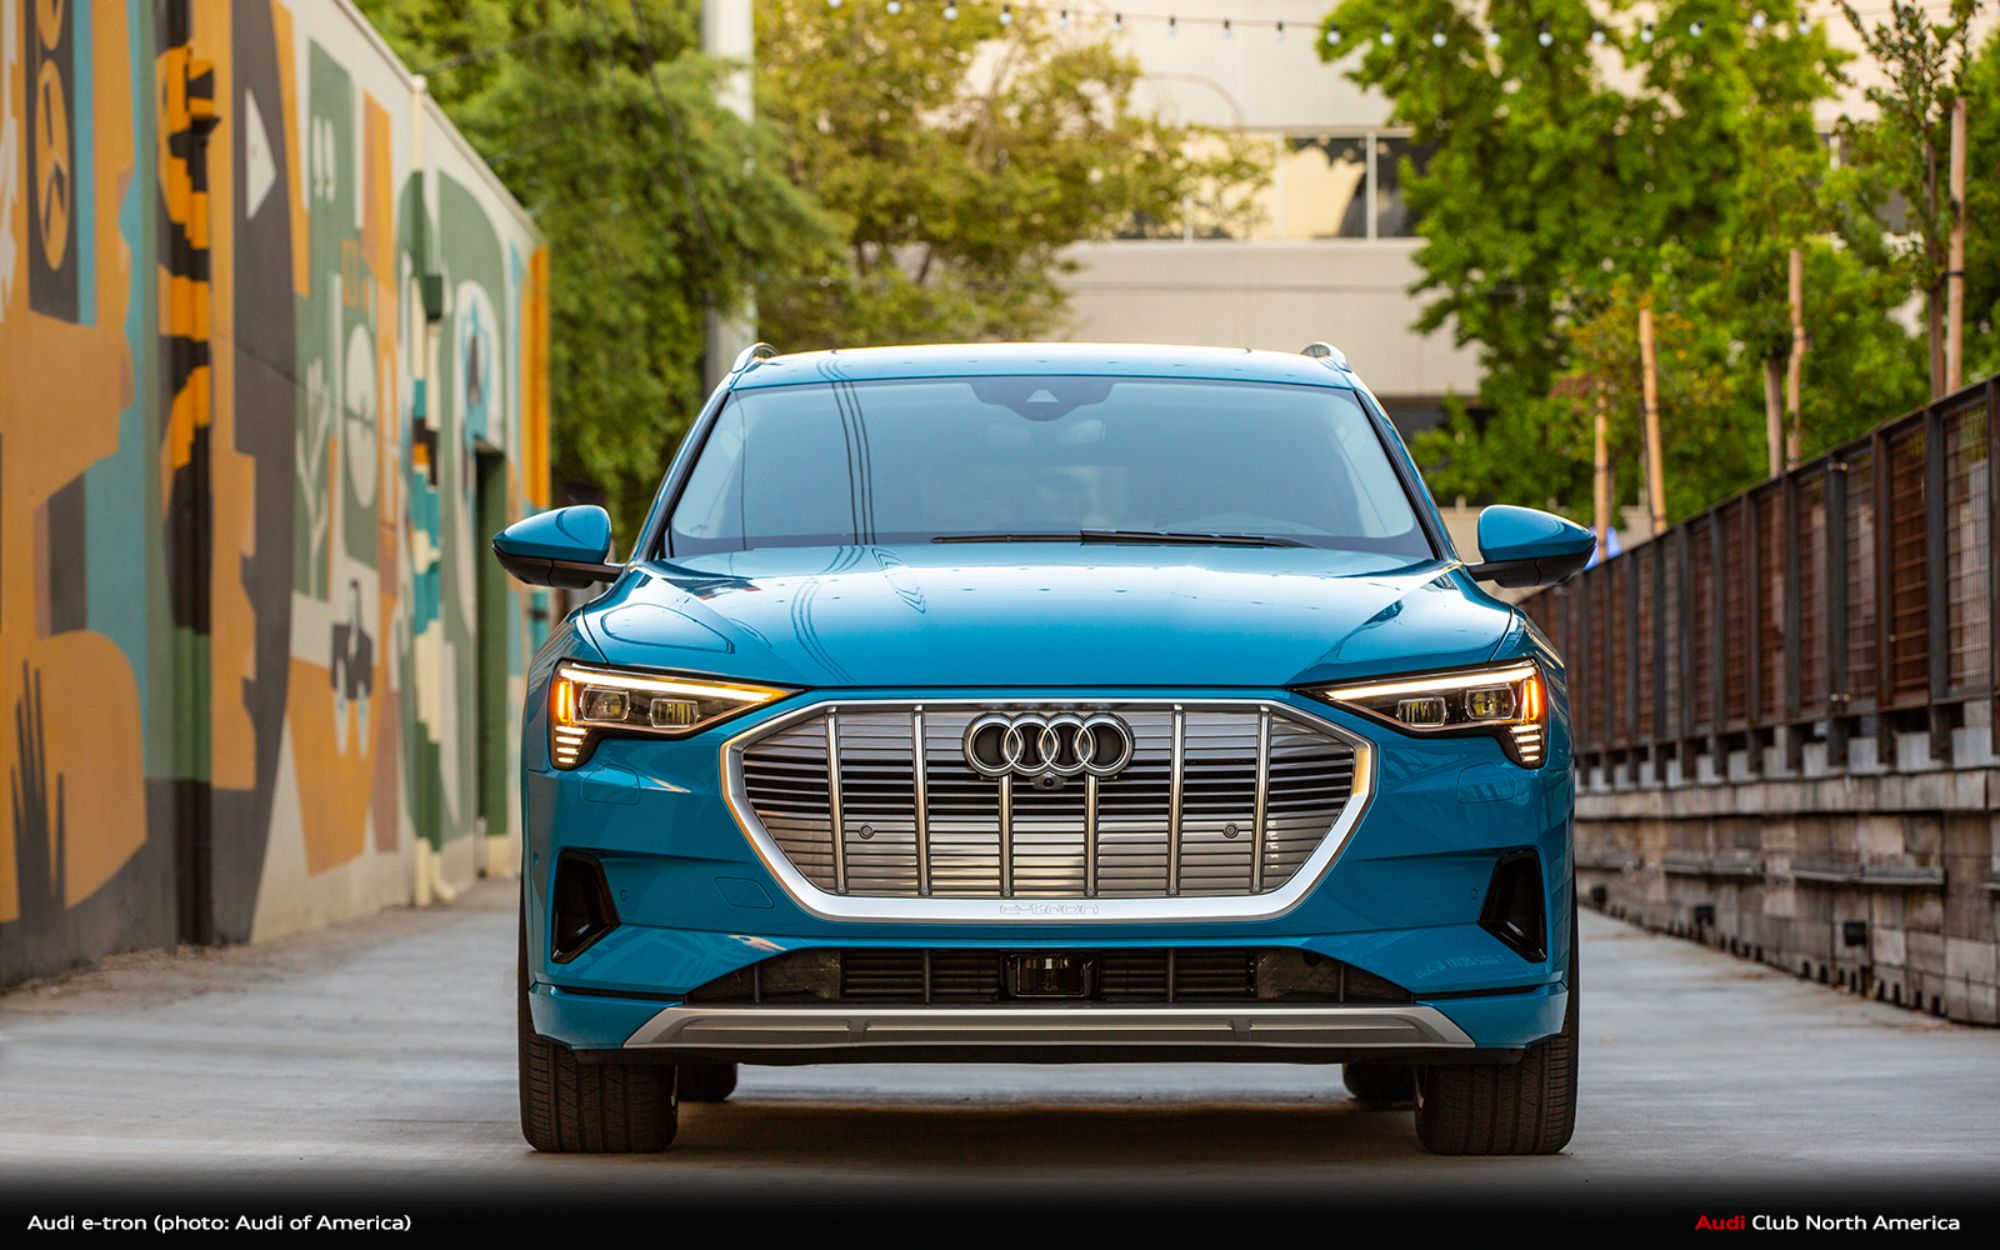 2019 Audi e-tron SUV Awarded Green Car Reports' Best Car To Buy 2020